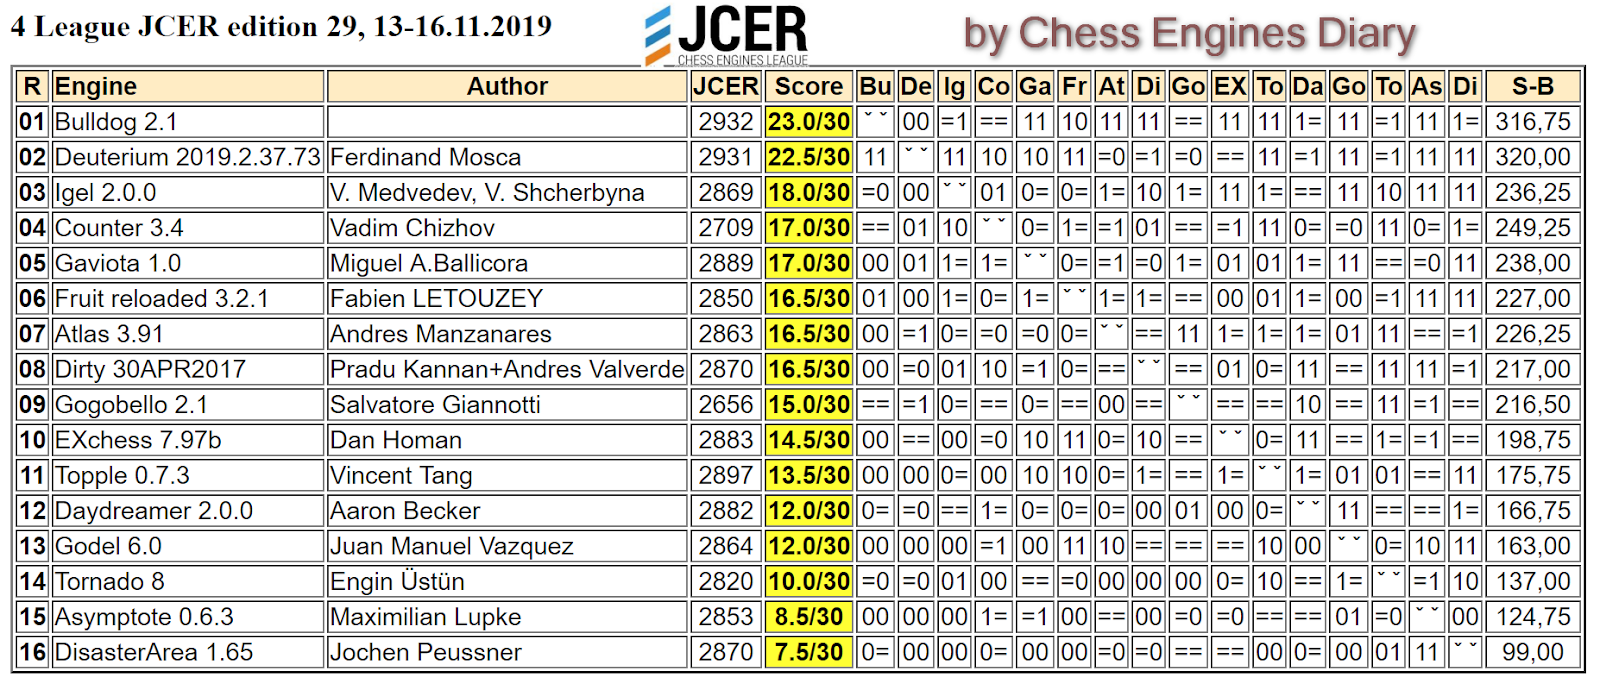 JCER (Jurek Chess Engines Rating) tournaments - Page 20 2019.11.13.4LeagueJCER.ed29.html